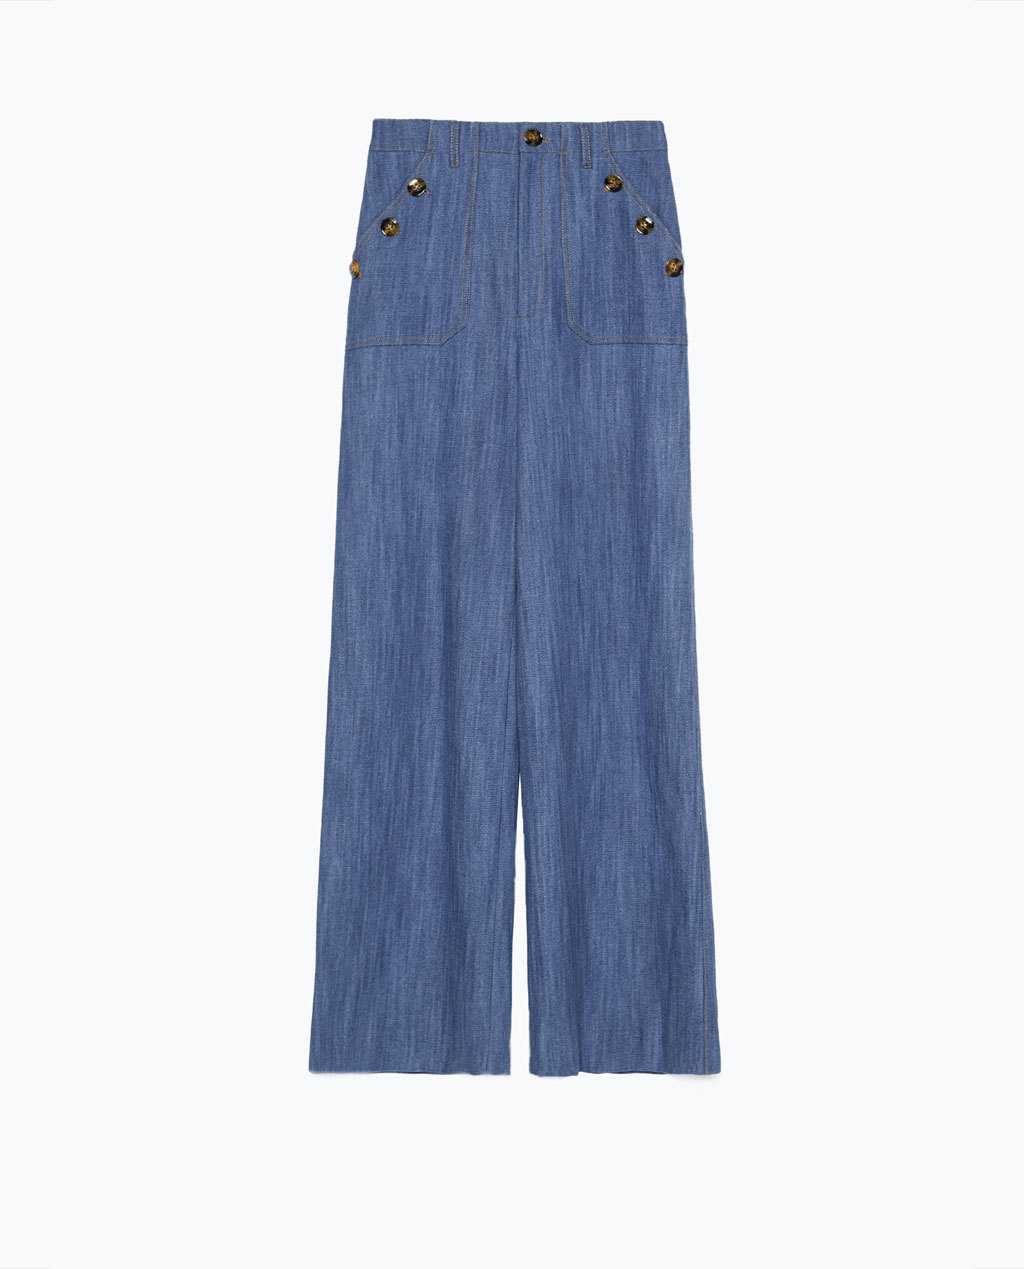 High Waist Wide Legged Jeans - length: standard; pattern: plain; waist: high rise; style: wide leg; predominant colour: denim; occasions: casual, creative work; fibres: cotton - 100%; texture group: denim; pattern type: fabric; trends: seventies retro; season: s/s 2015; wardrobe: basic